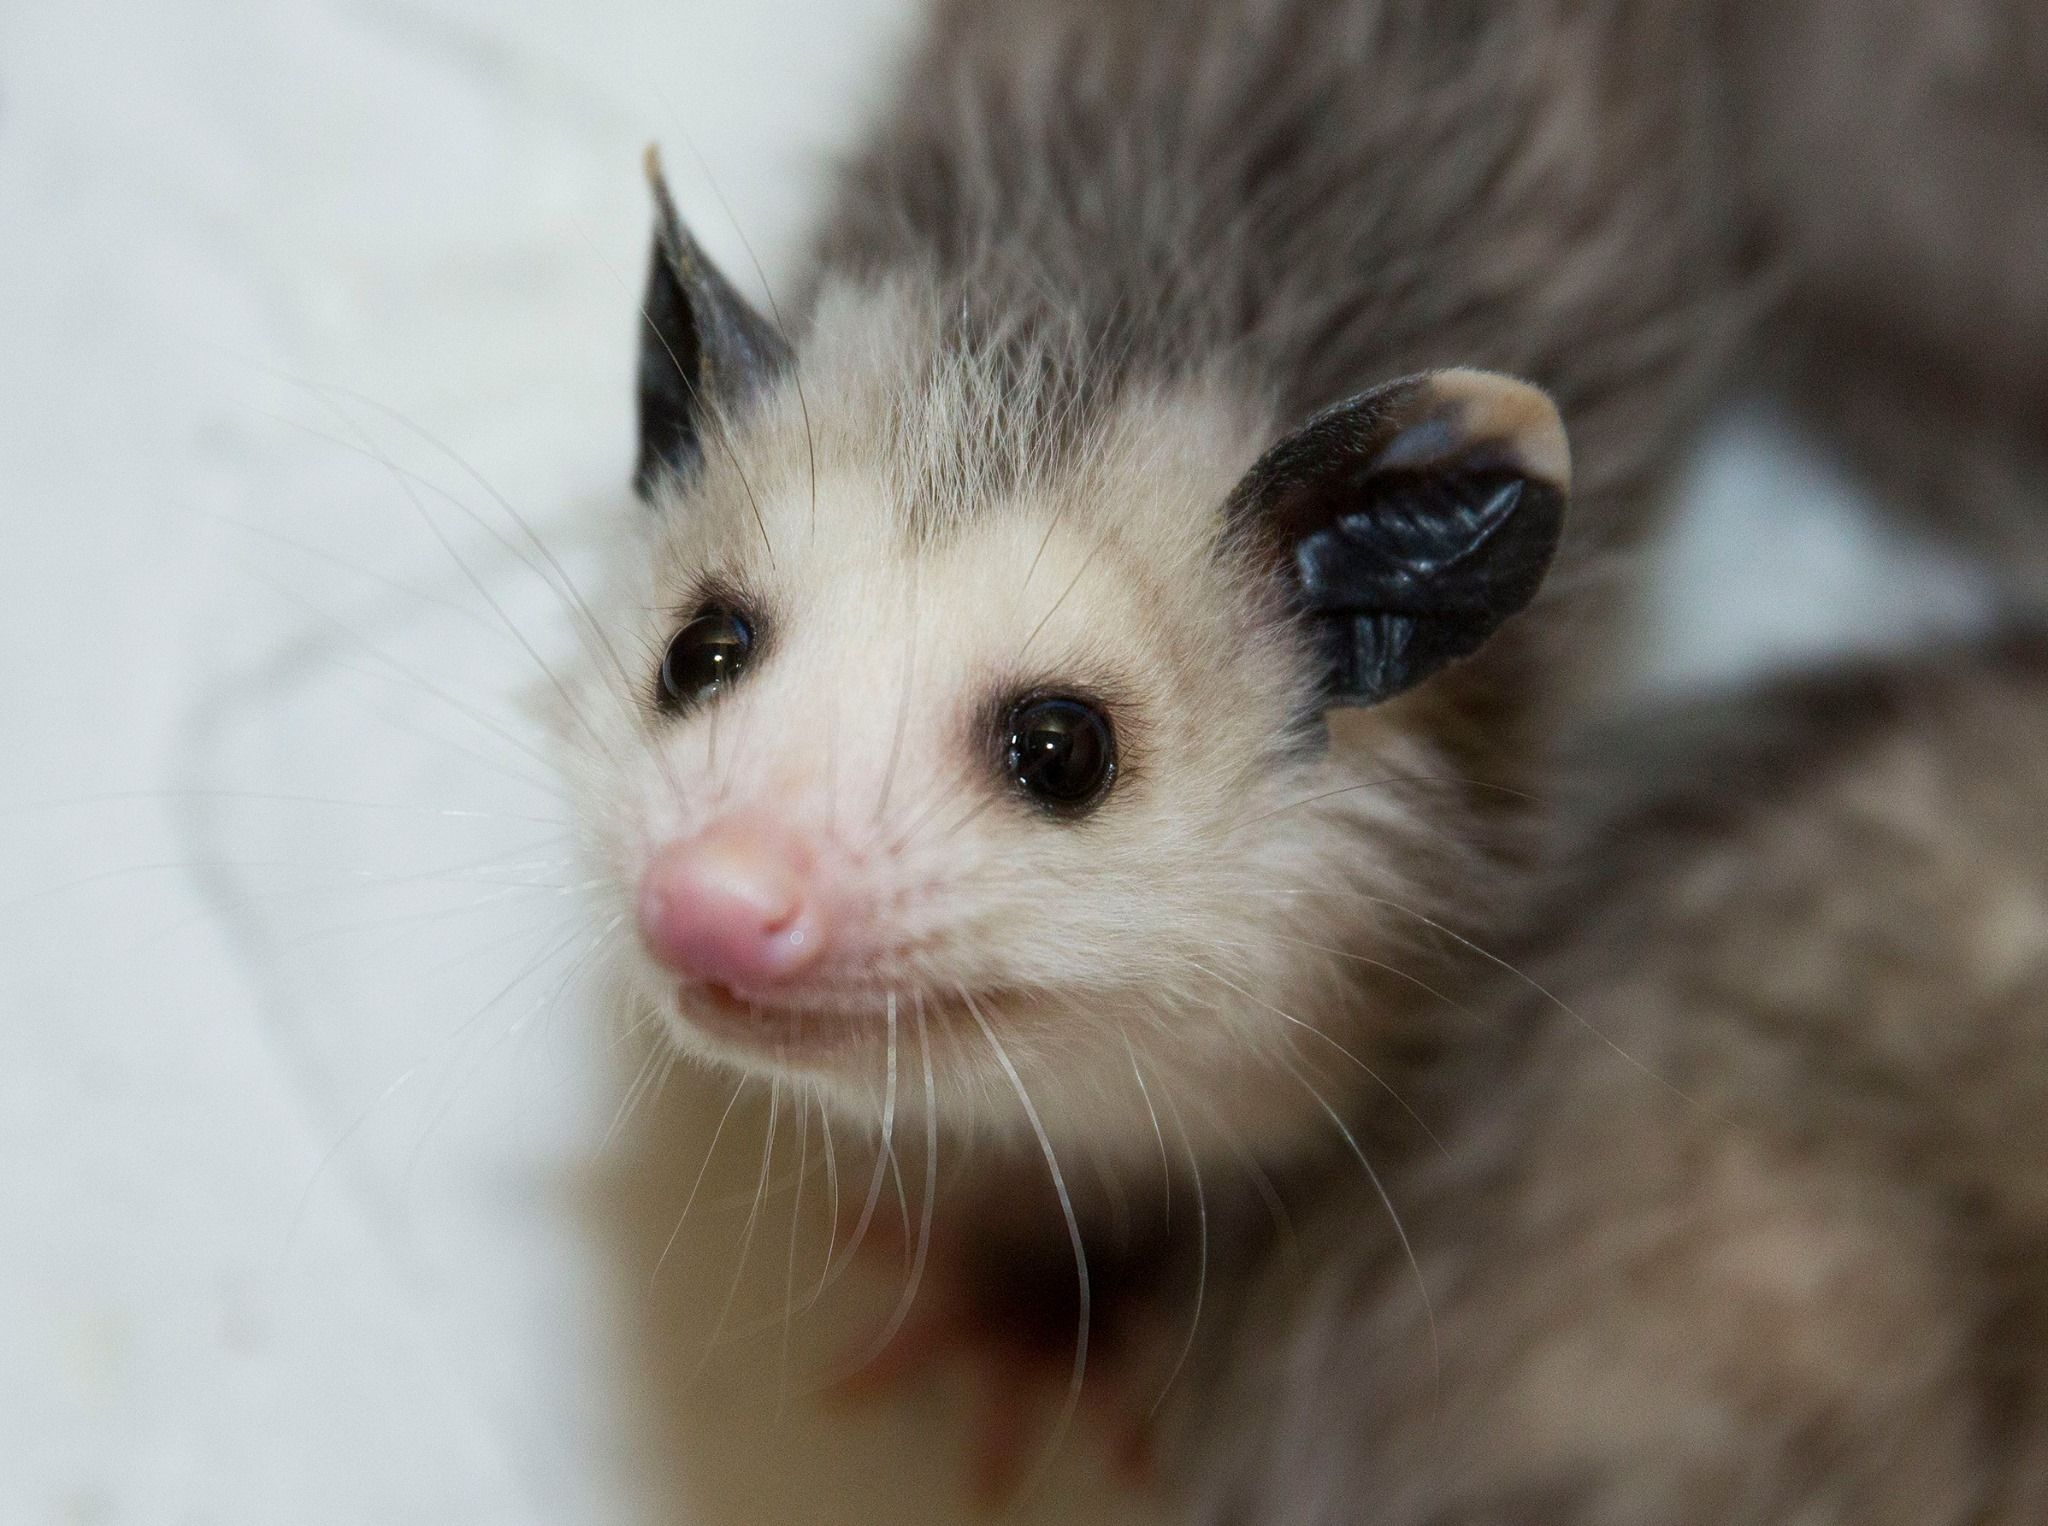 by: Wally the Opossum